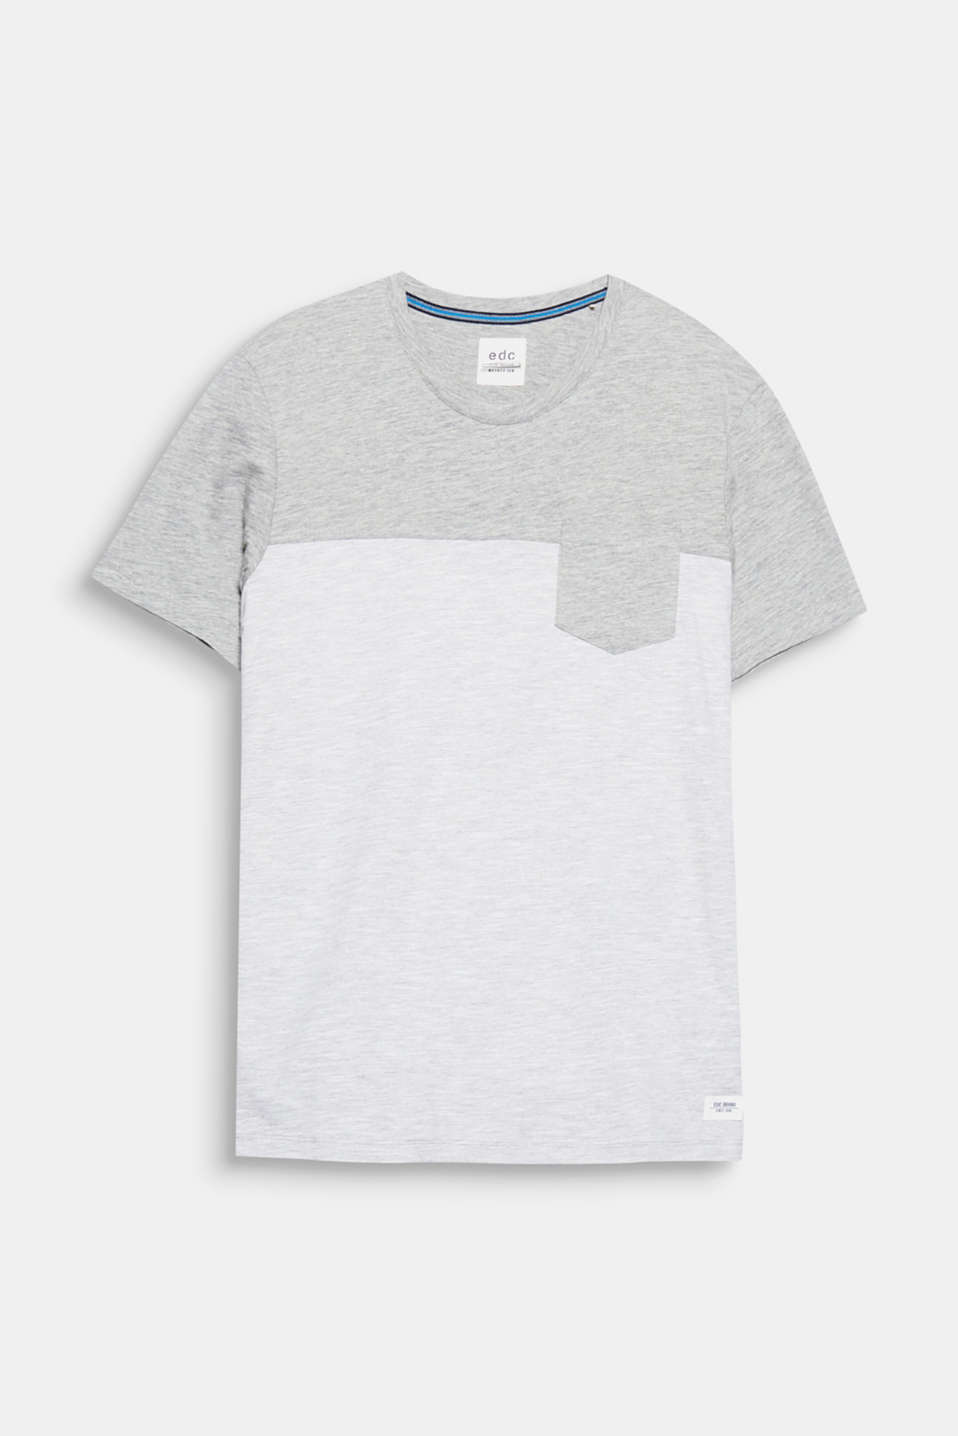 The textured slub jersey fabric and block stripes make this T-shirt a casual style for urban looks.